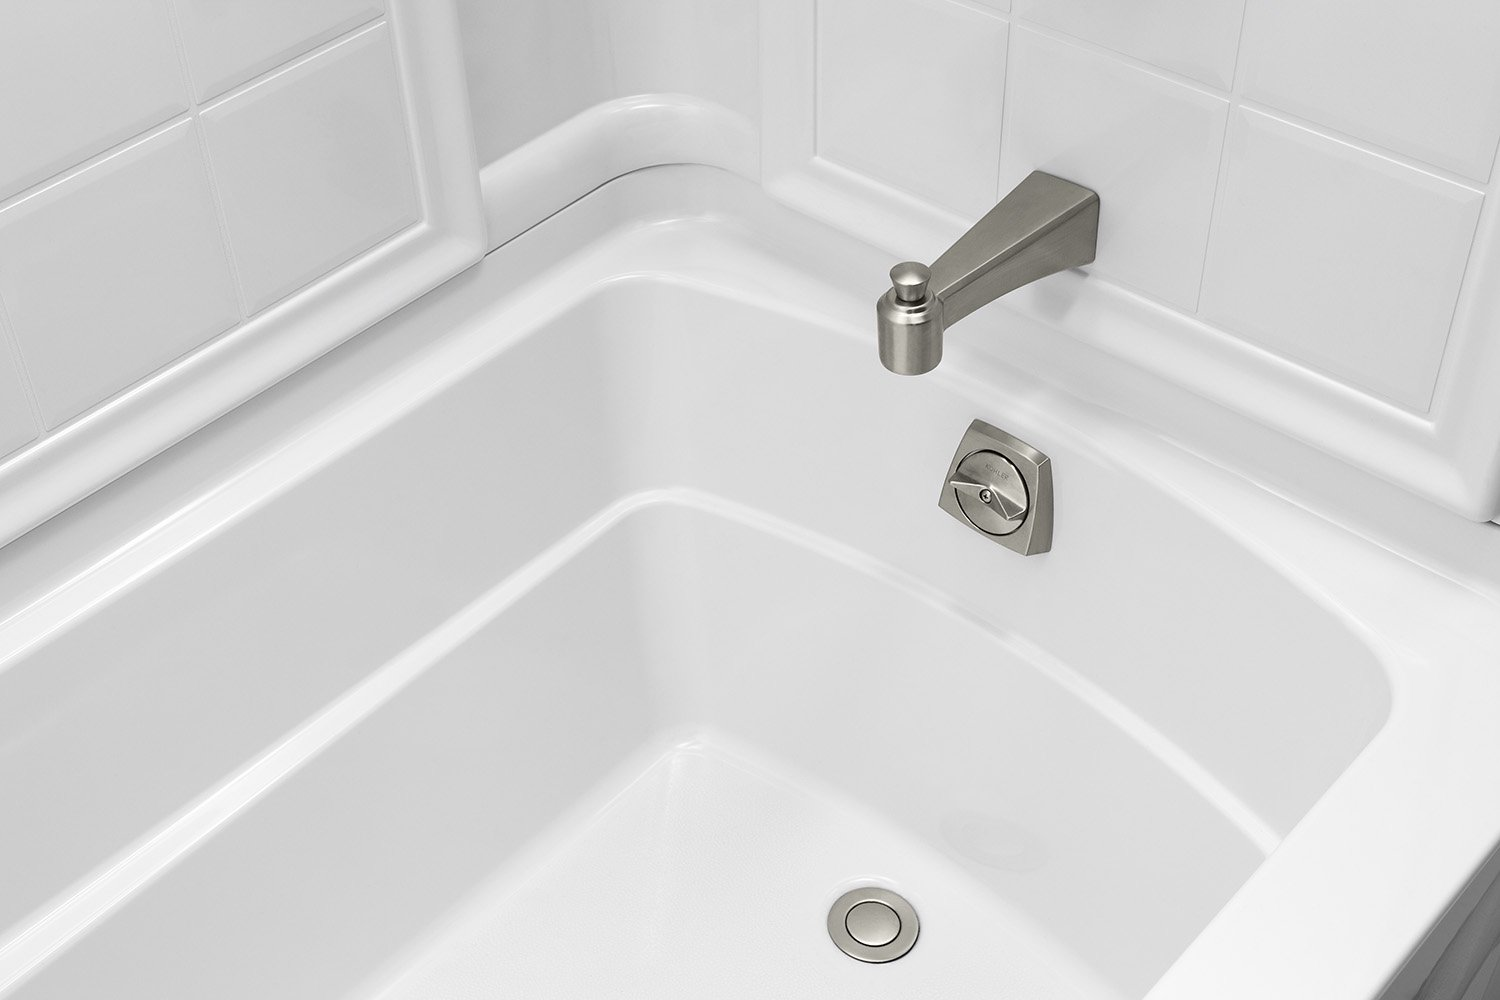 Sterling Plumbing 71110110-0 Ensemble Bath and Shower Kit, 60-Inch x ...